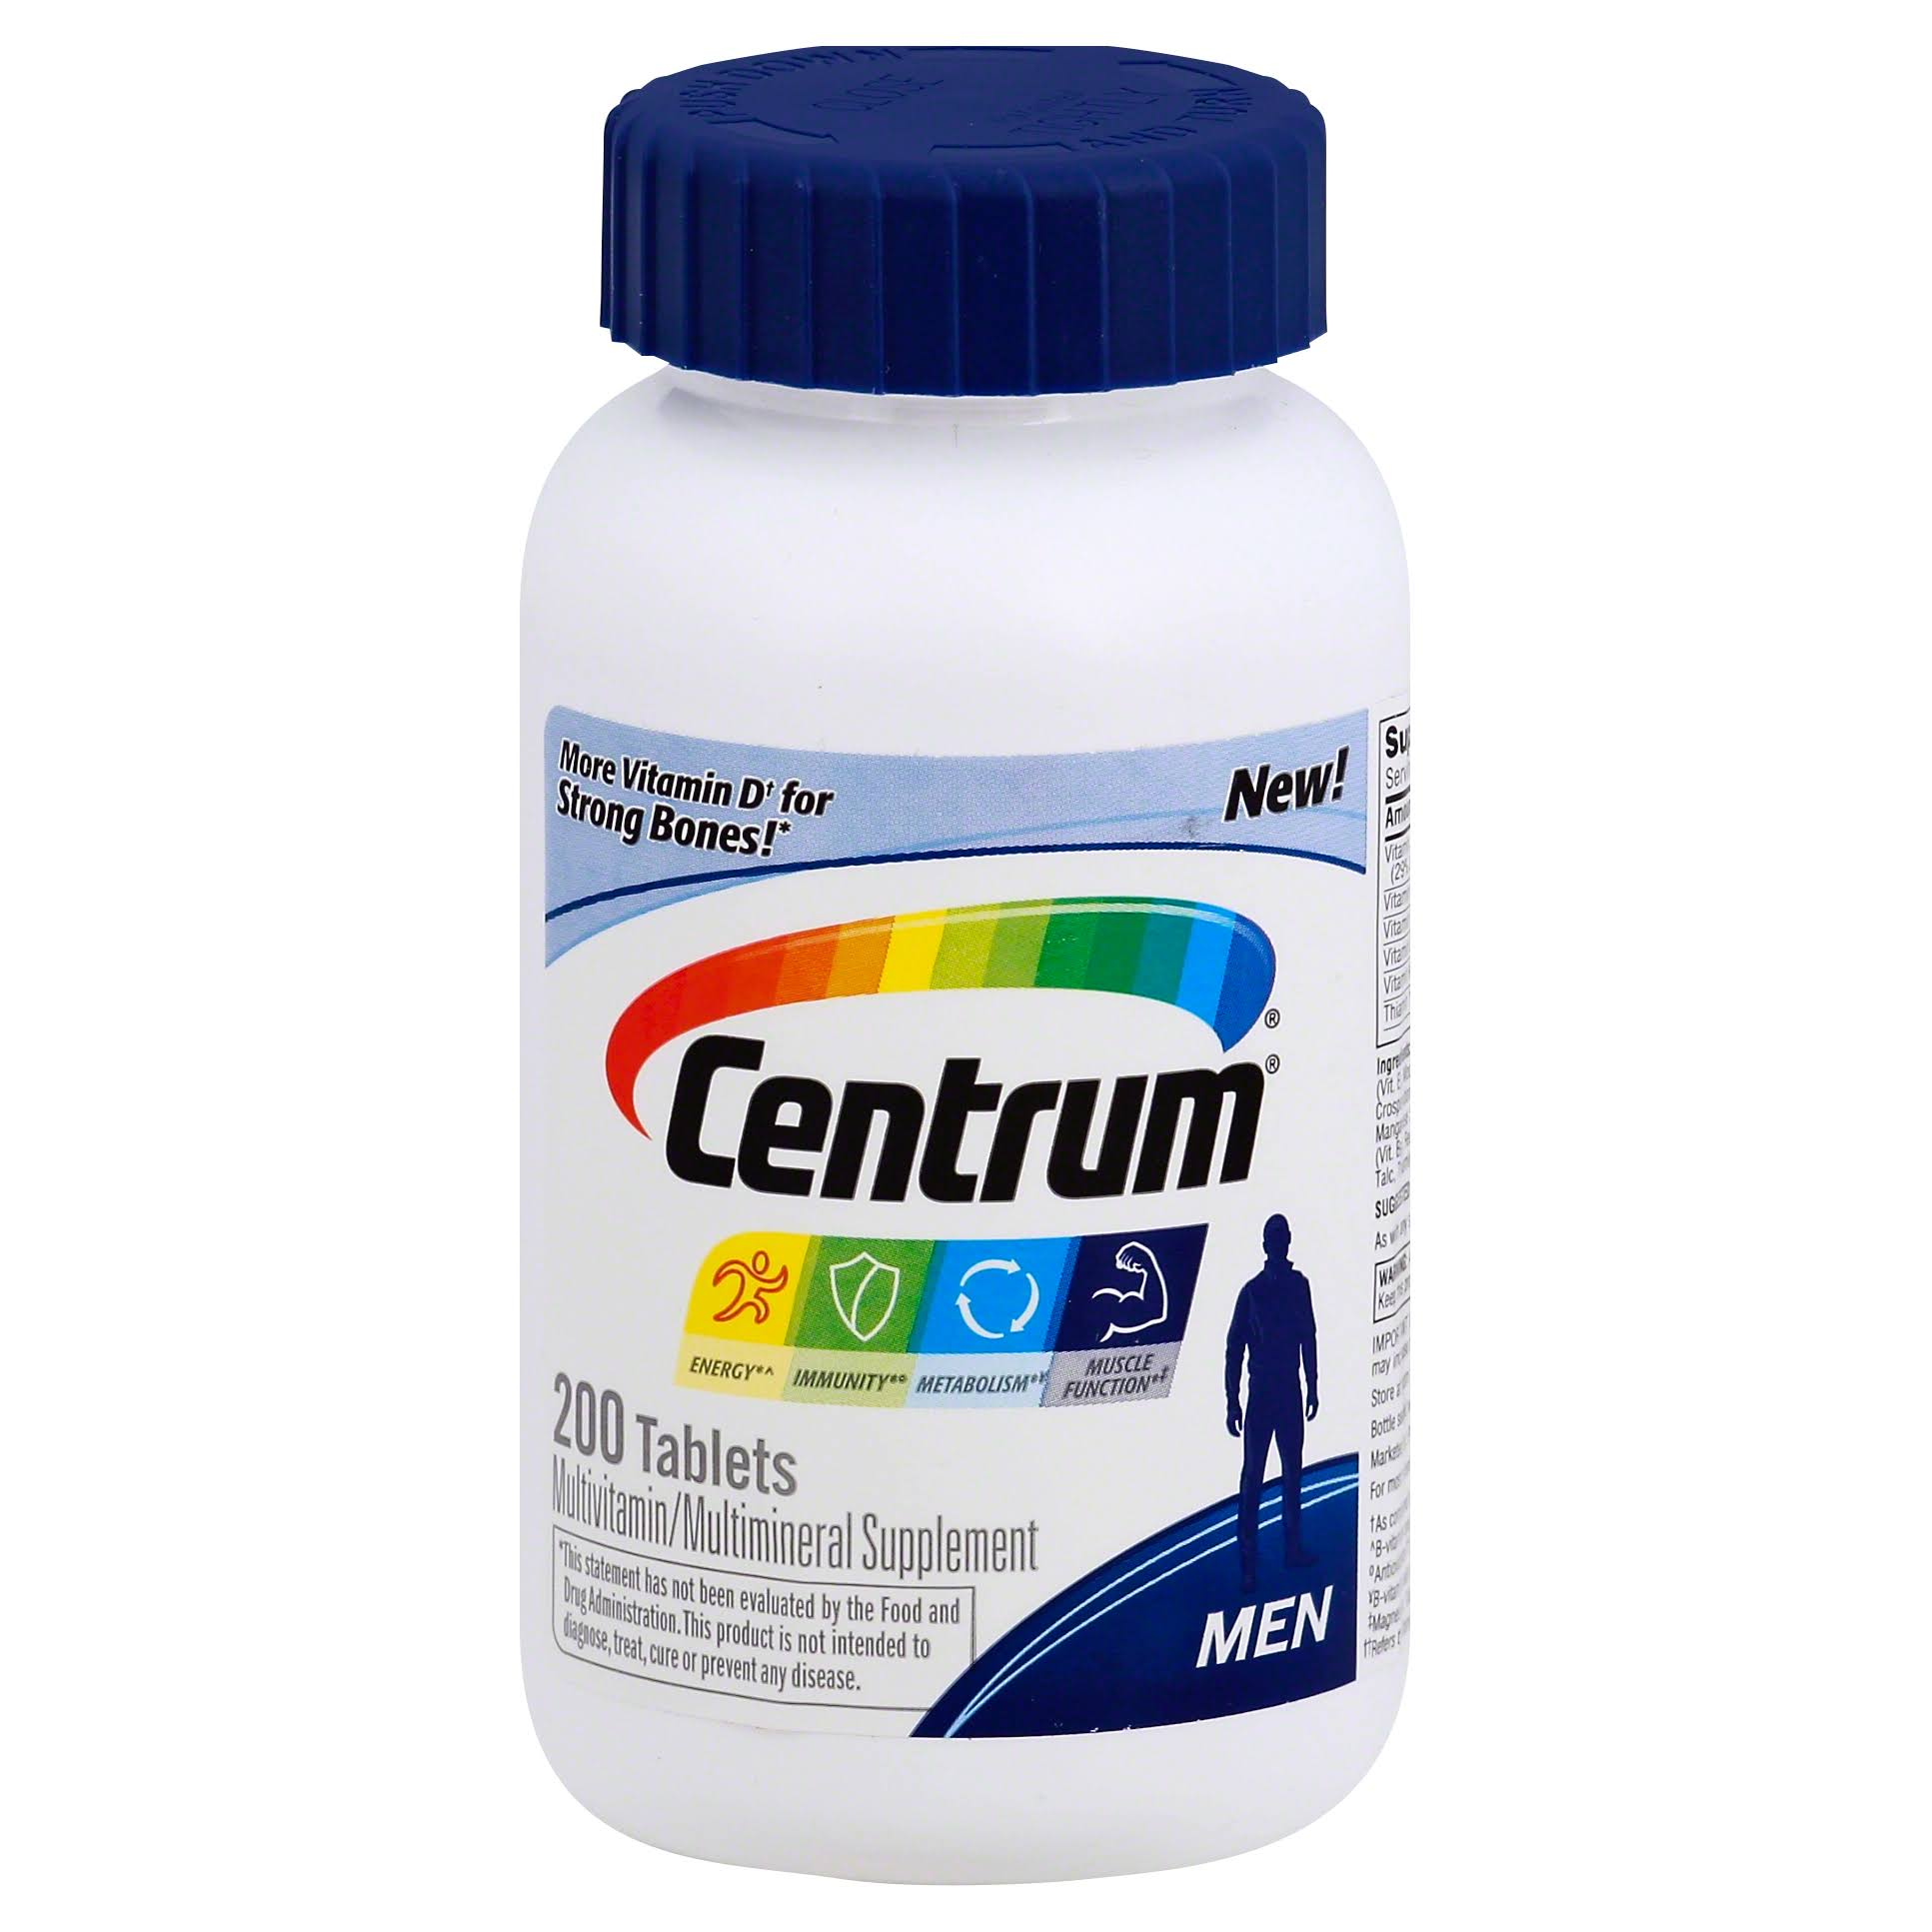 Centrum Men Multivitamin and Multimineral Supplement - 200ct